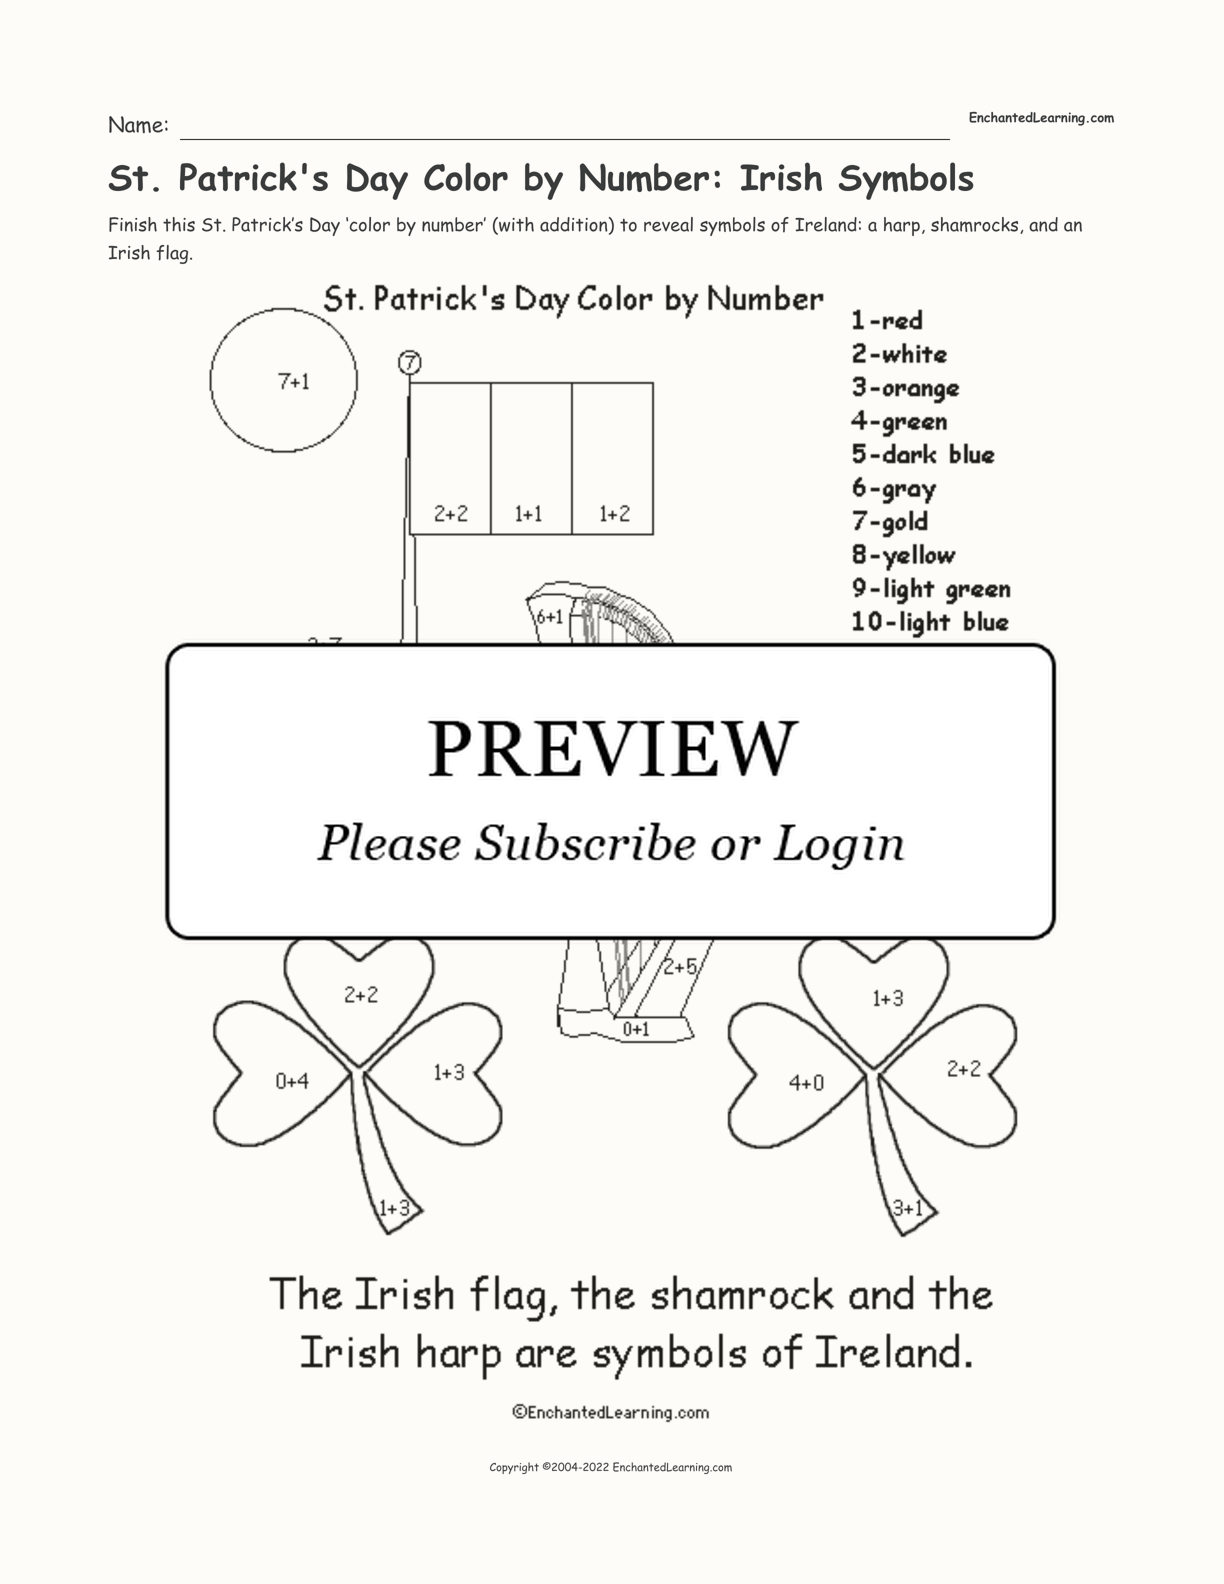 St. Patrick's Day Color by Number: Irish Symbols interactive printout page 1